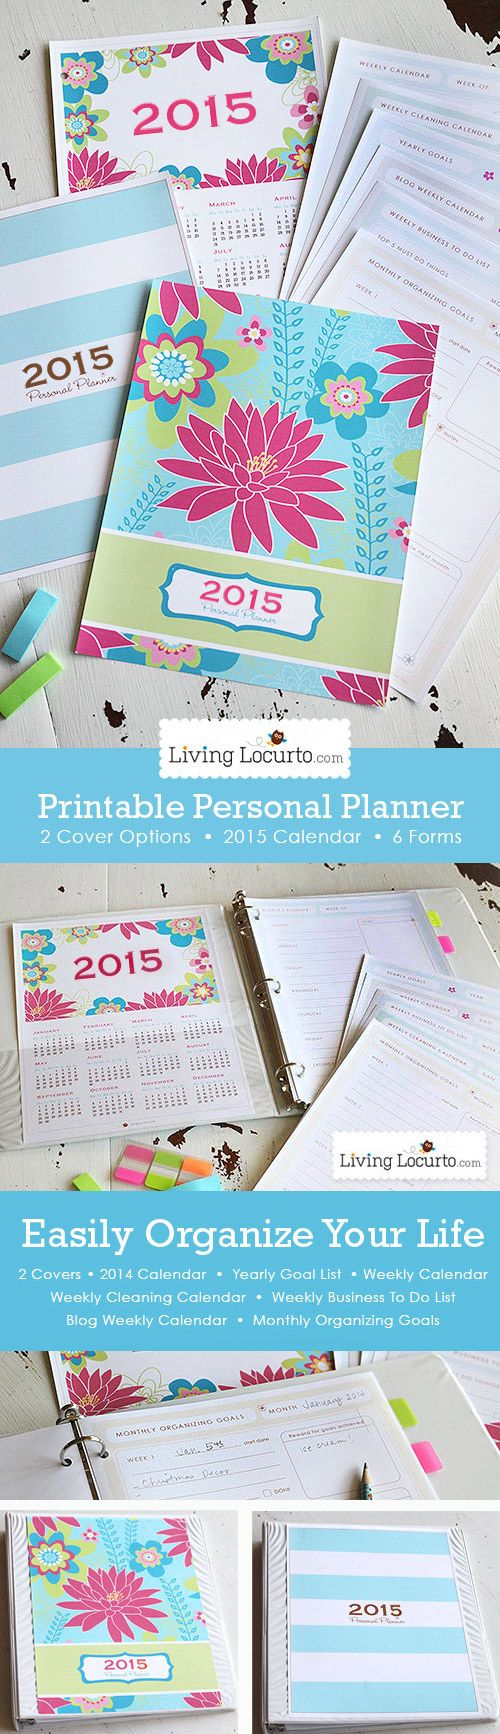 I love this cute idea. Get your life organized! A Printable Daily Planner with 2015 Calendar and 6 life organizational sheets. Cleaning calendar, blog calendar, To-do lists and more! LivingLocurto.com